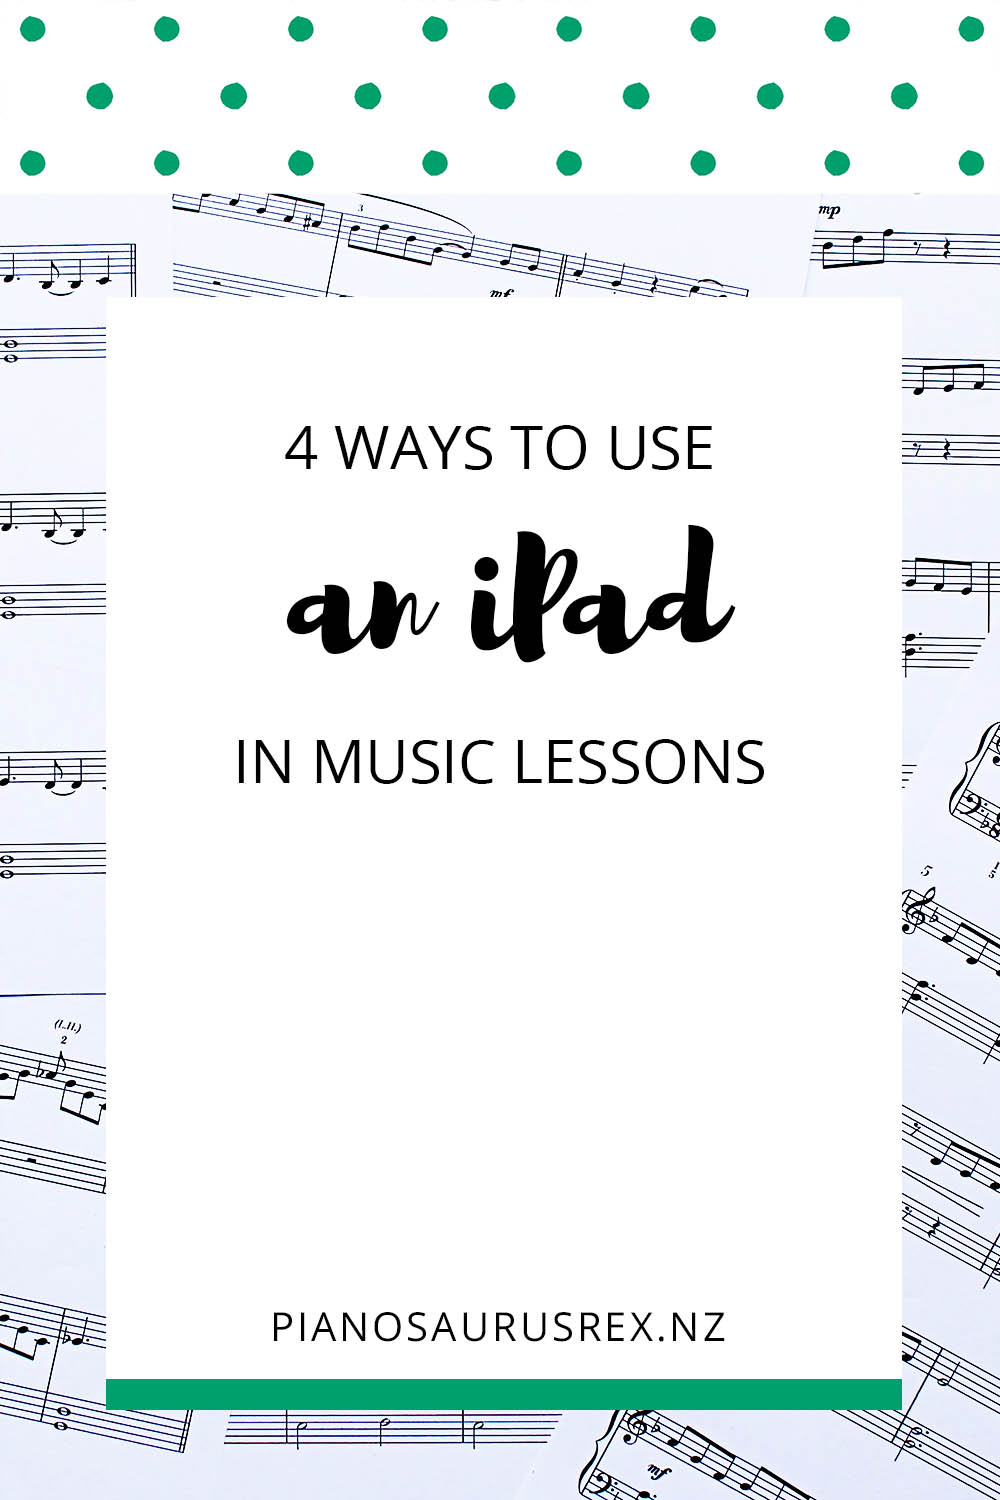 4 Ways To Use An IPad In Music Lessons